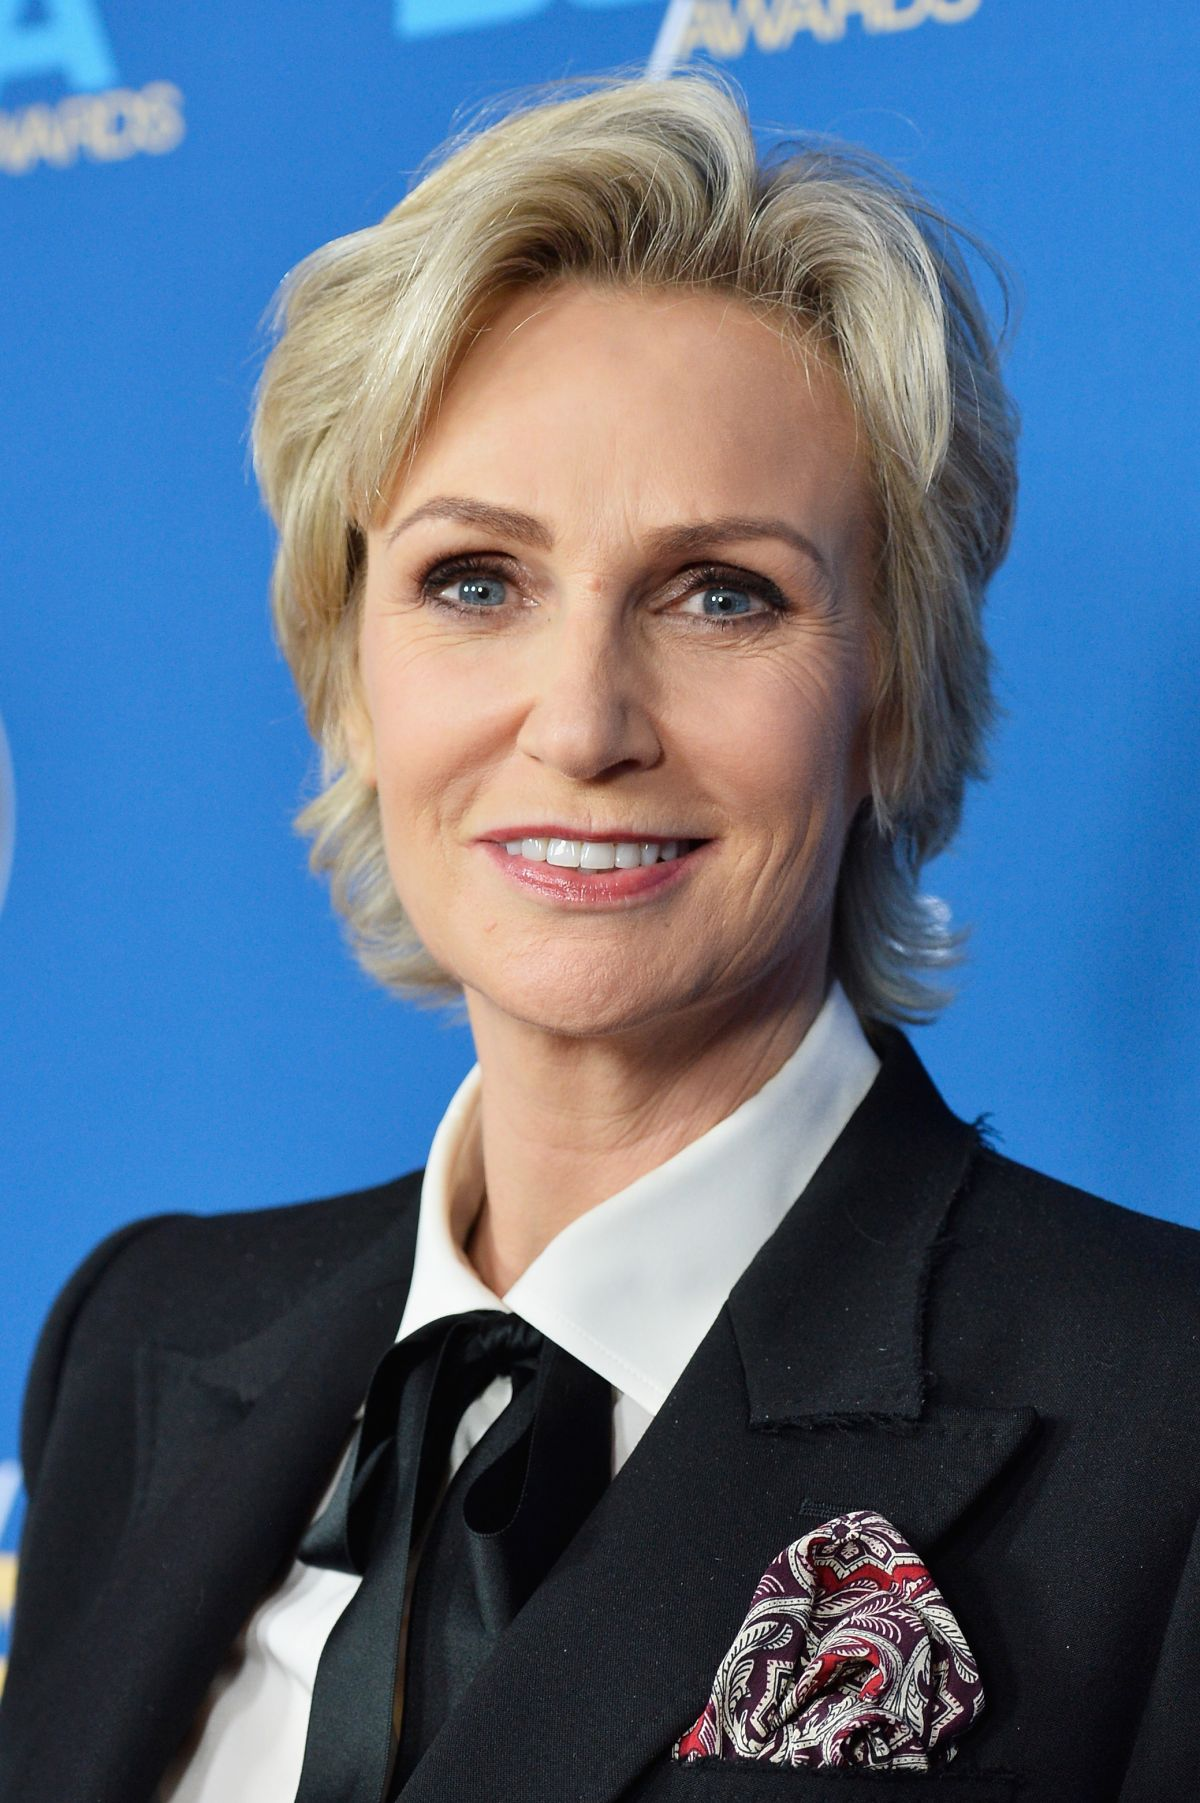 jane lynch zimbiojane lynch height, jane lynch wife, jane lynch height weight, jane lynch glee, jane lynch zimbio, jane lynch hold 4 you, jane lynch ellen degeneres, jane lynch christmas album, jane lynch desperate housewives, jane lynch career, jane lynch wedding photos, jane lynch consent to treatment, jane lynch lara embry, jane lynch criminal minds, jane lynch entourage, jane lynch 2016, jane lynch behind the voice actors, jane lynch as sergeant calhoun, jane lynch steppenwolf, jane lynch on ellen